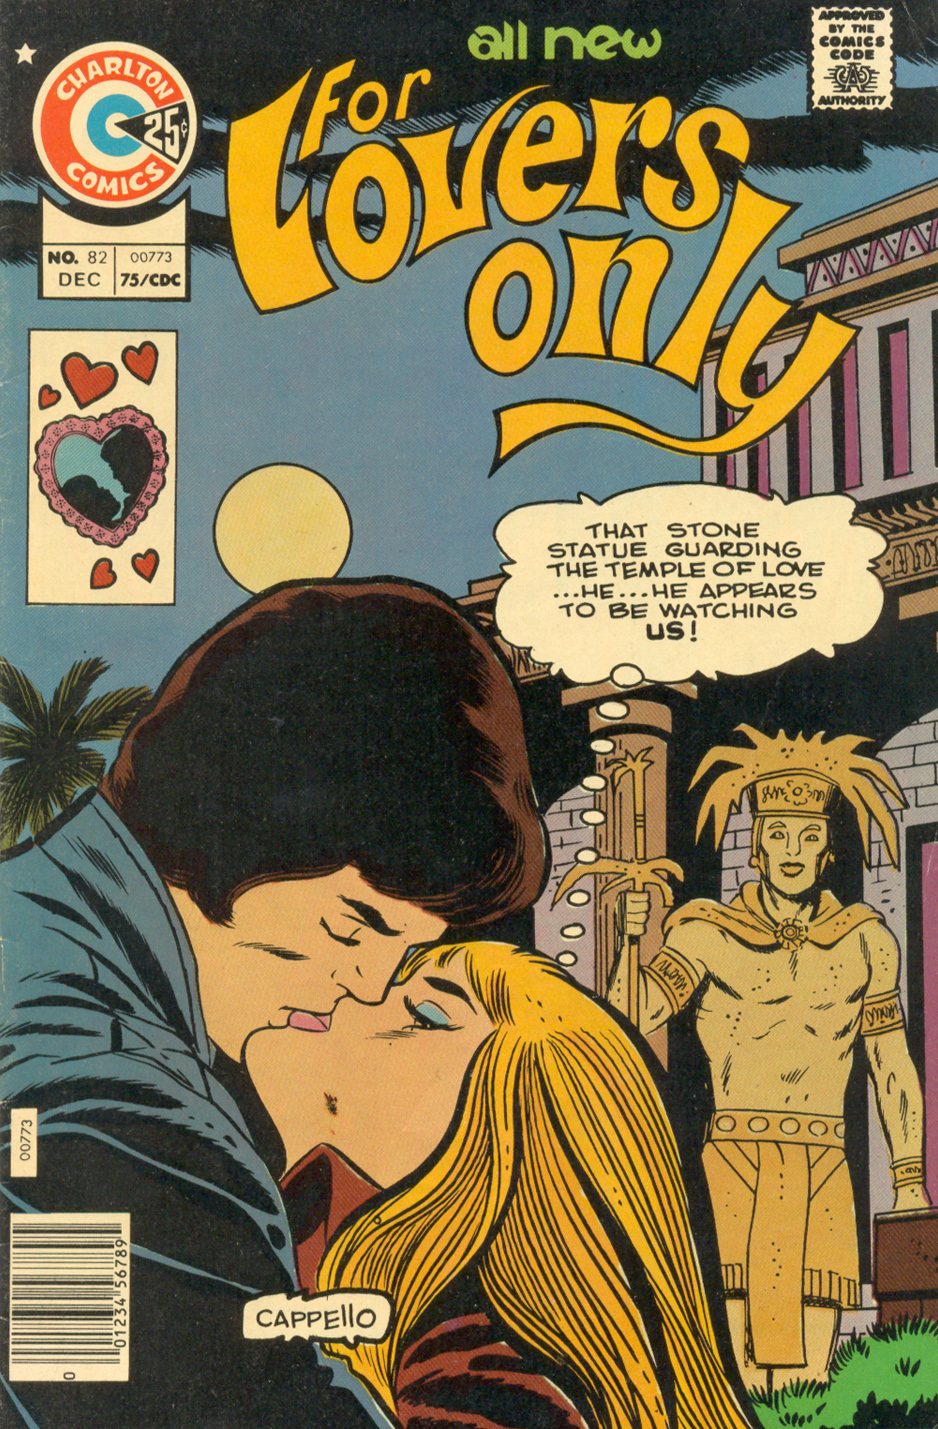 """Xtachoa's Bride"""" from  For Lovers Only #82 (December 1975) with art by Charles Nicholas and Vincent Alascia"""